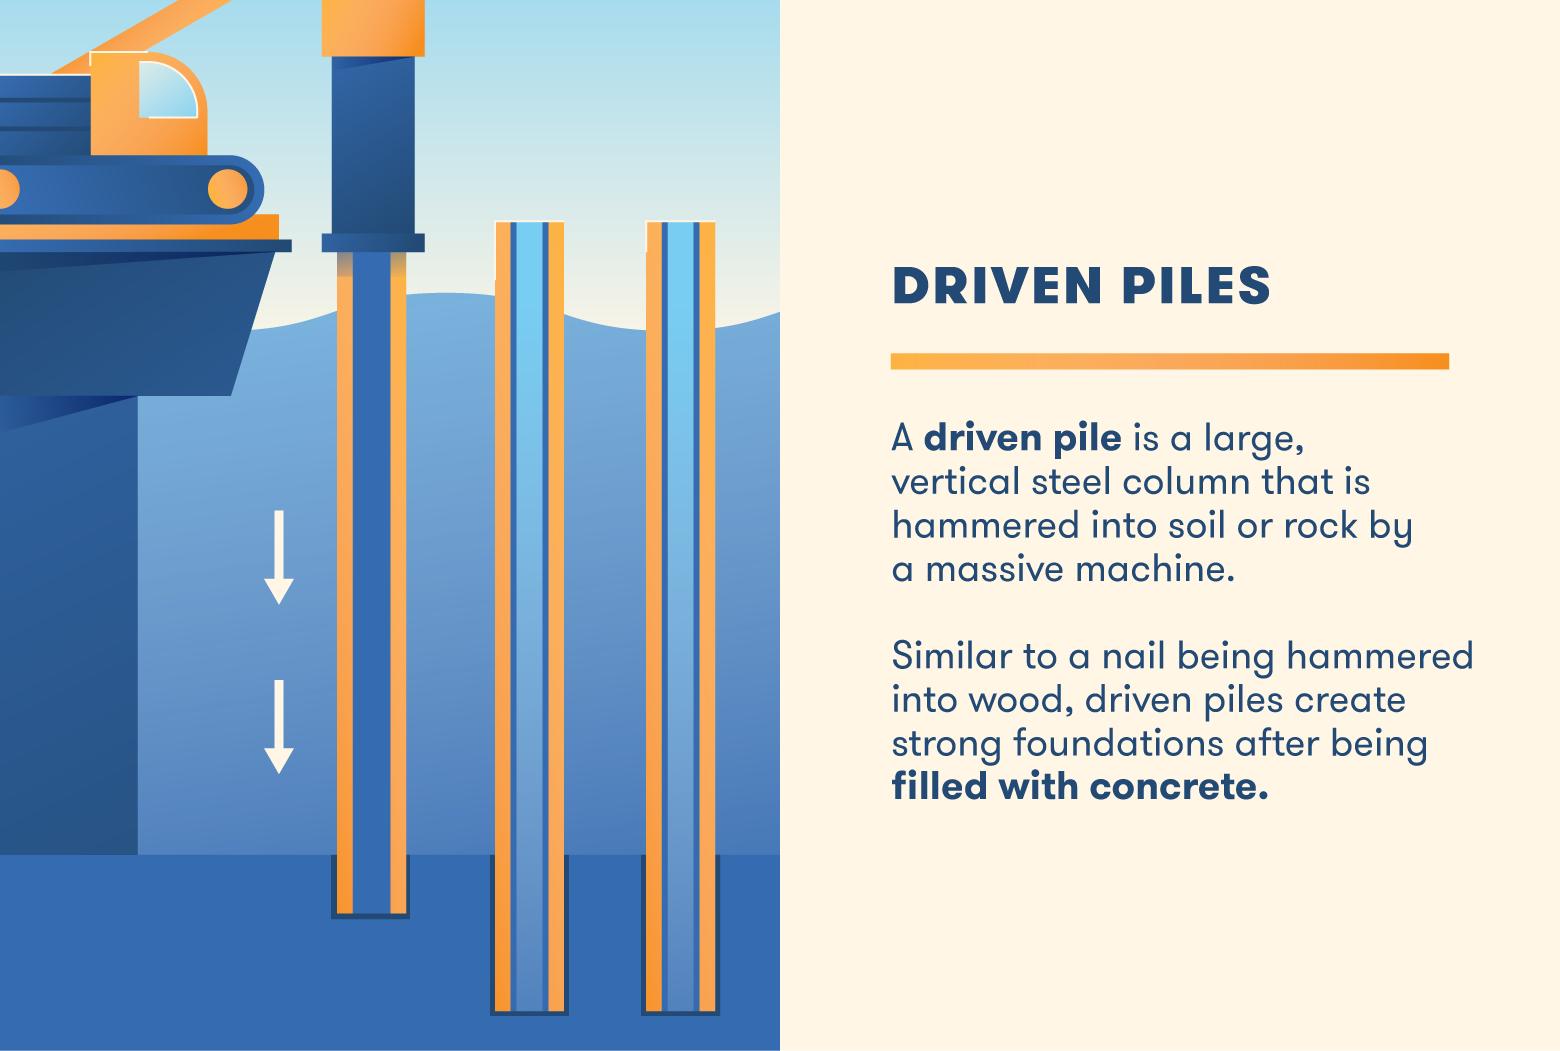 Driven piles are columns that are driven down into soil or rock to create a foundation.